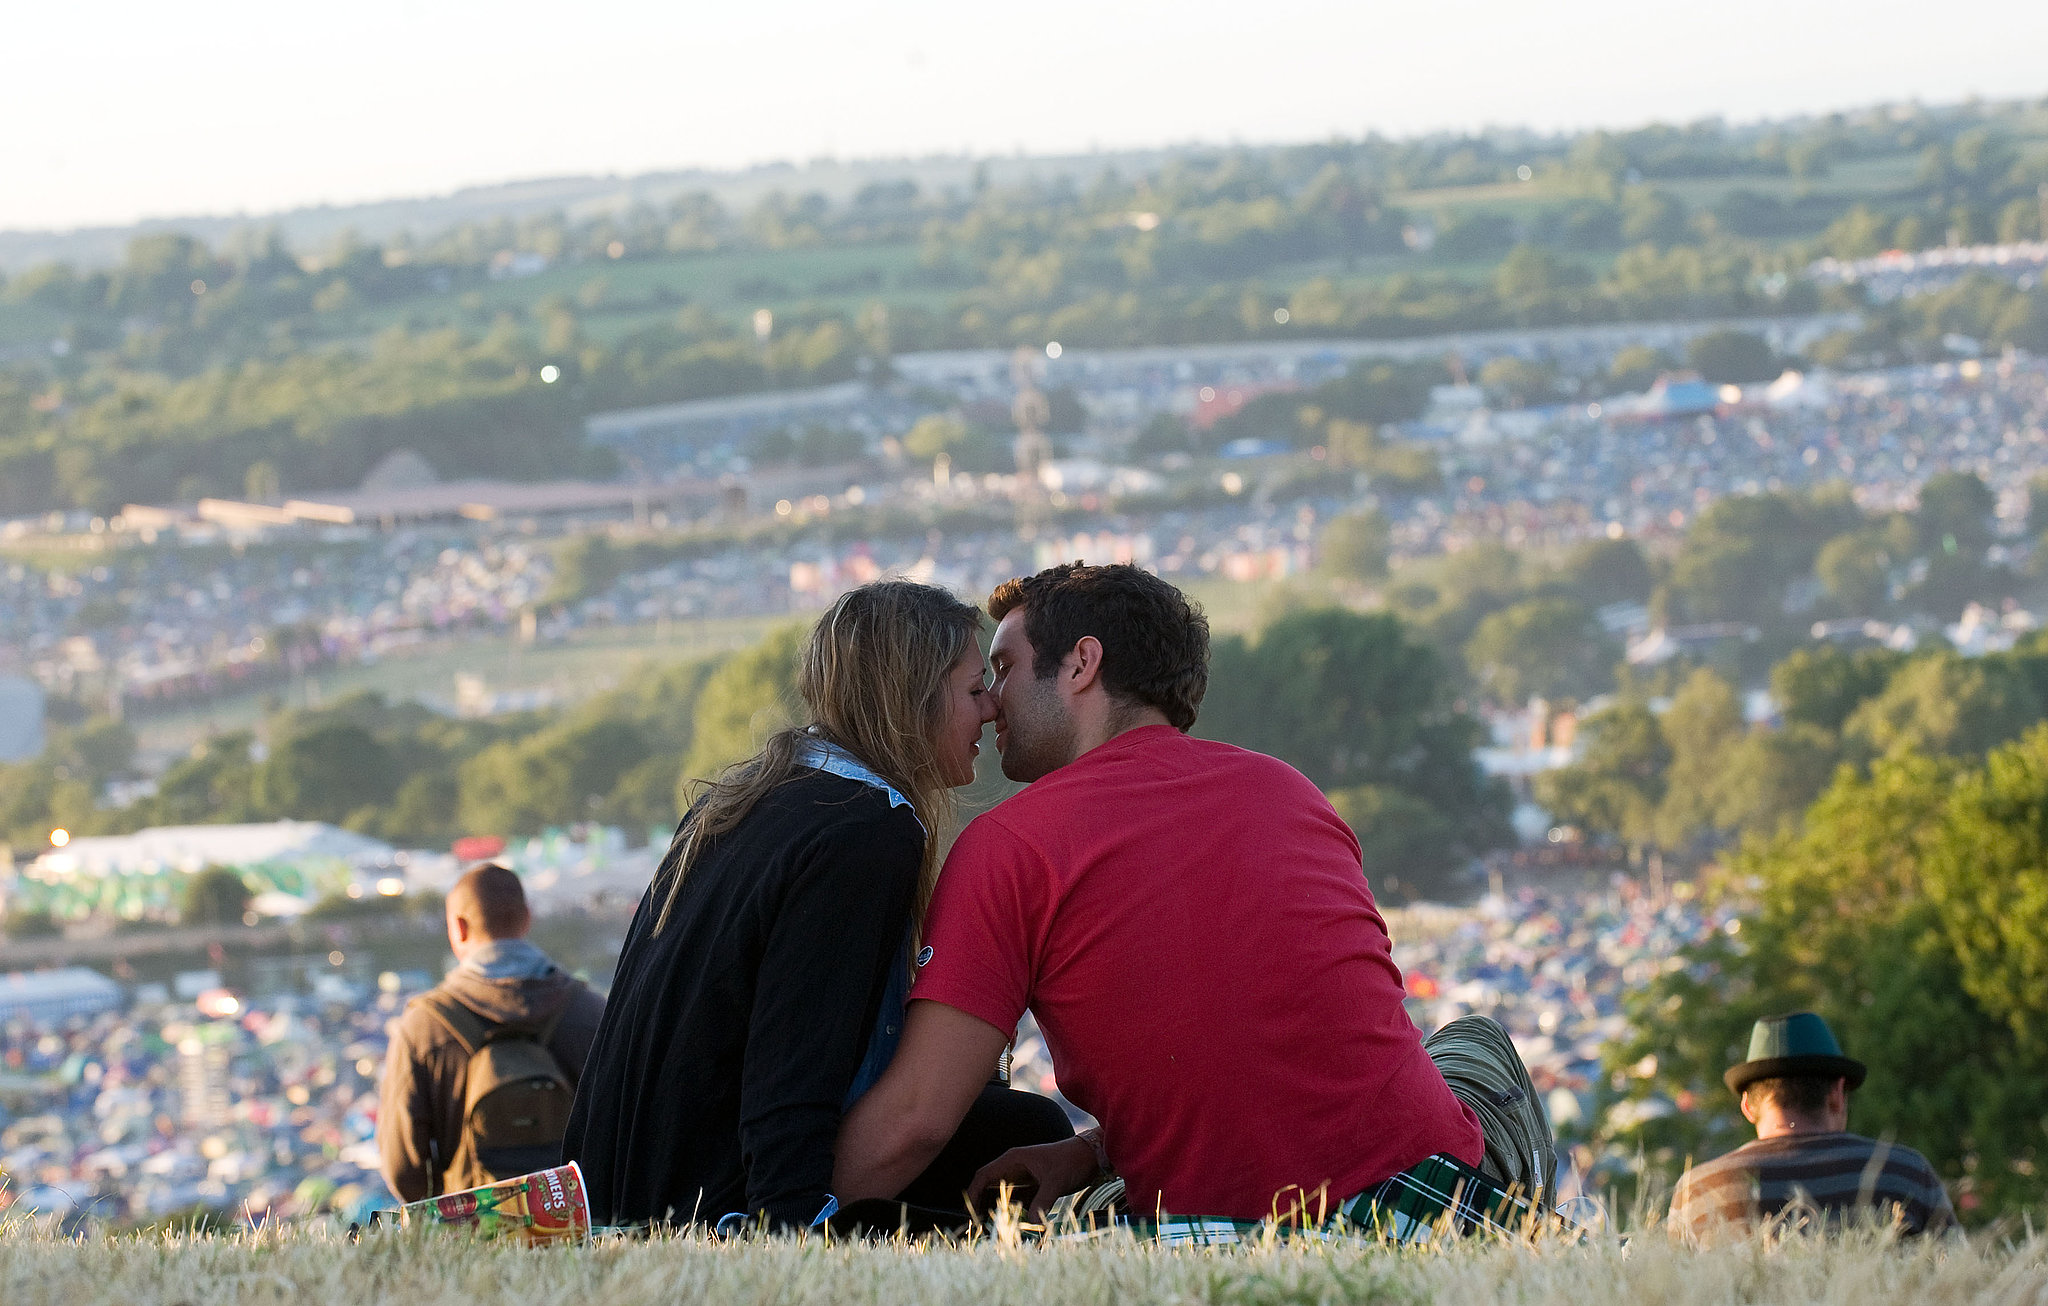 A twosome shared a romantic moment at the Glastonbury festival.